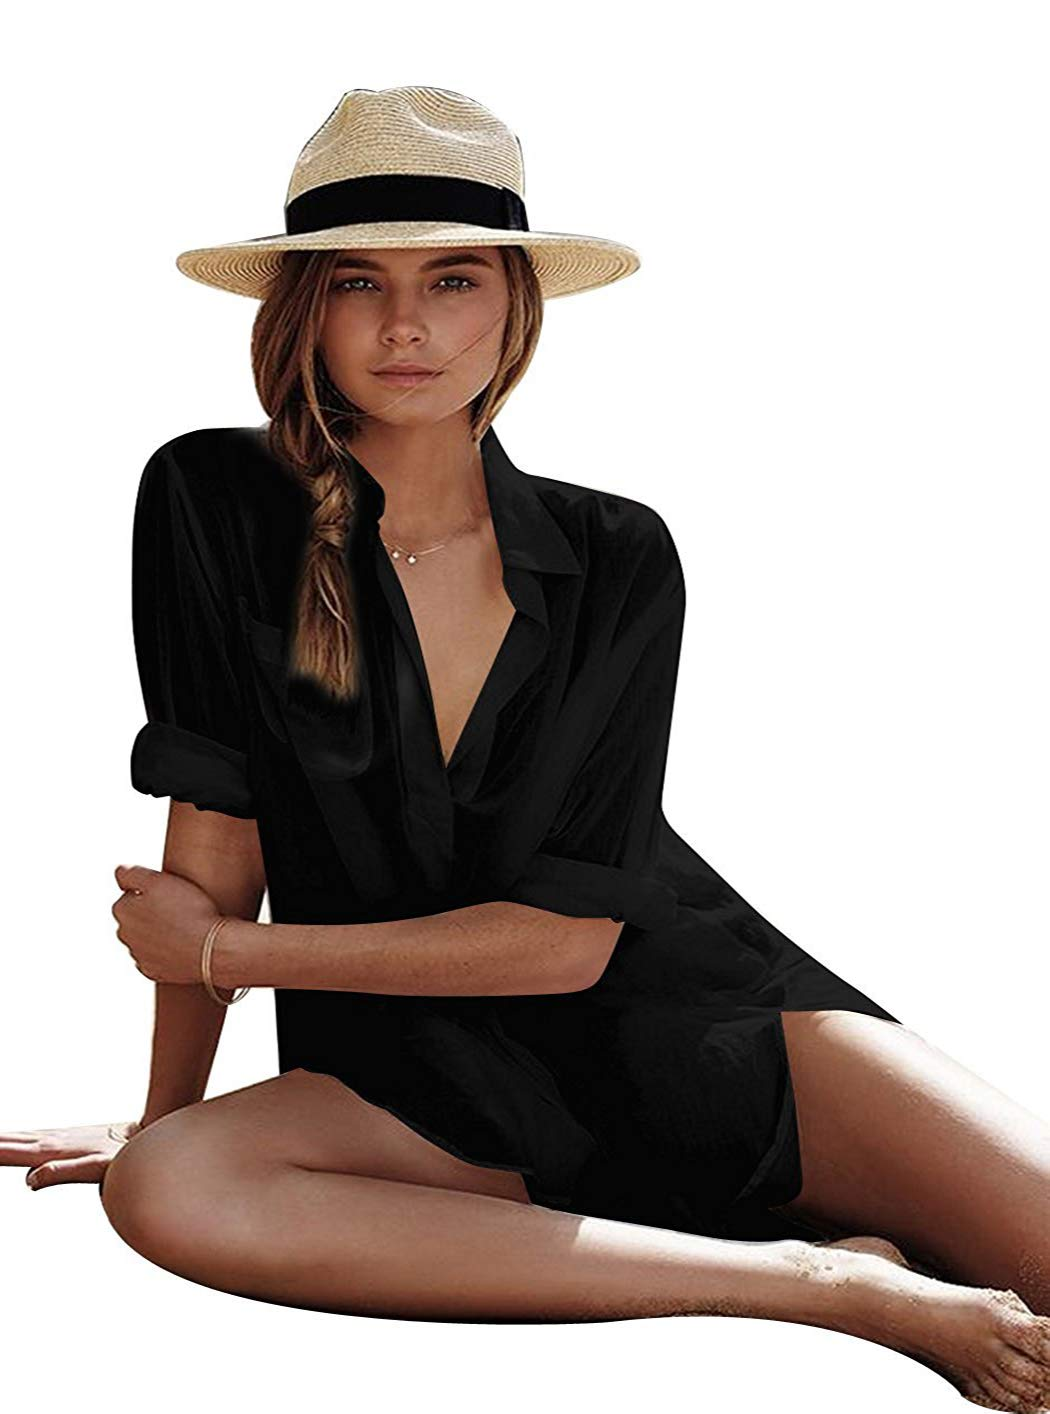 OURS Women's Sexy Cotton V-Neck Summer Beachwear Solid Swimsuit Cover Up Dress (XXL, Black)